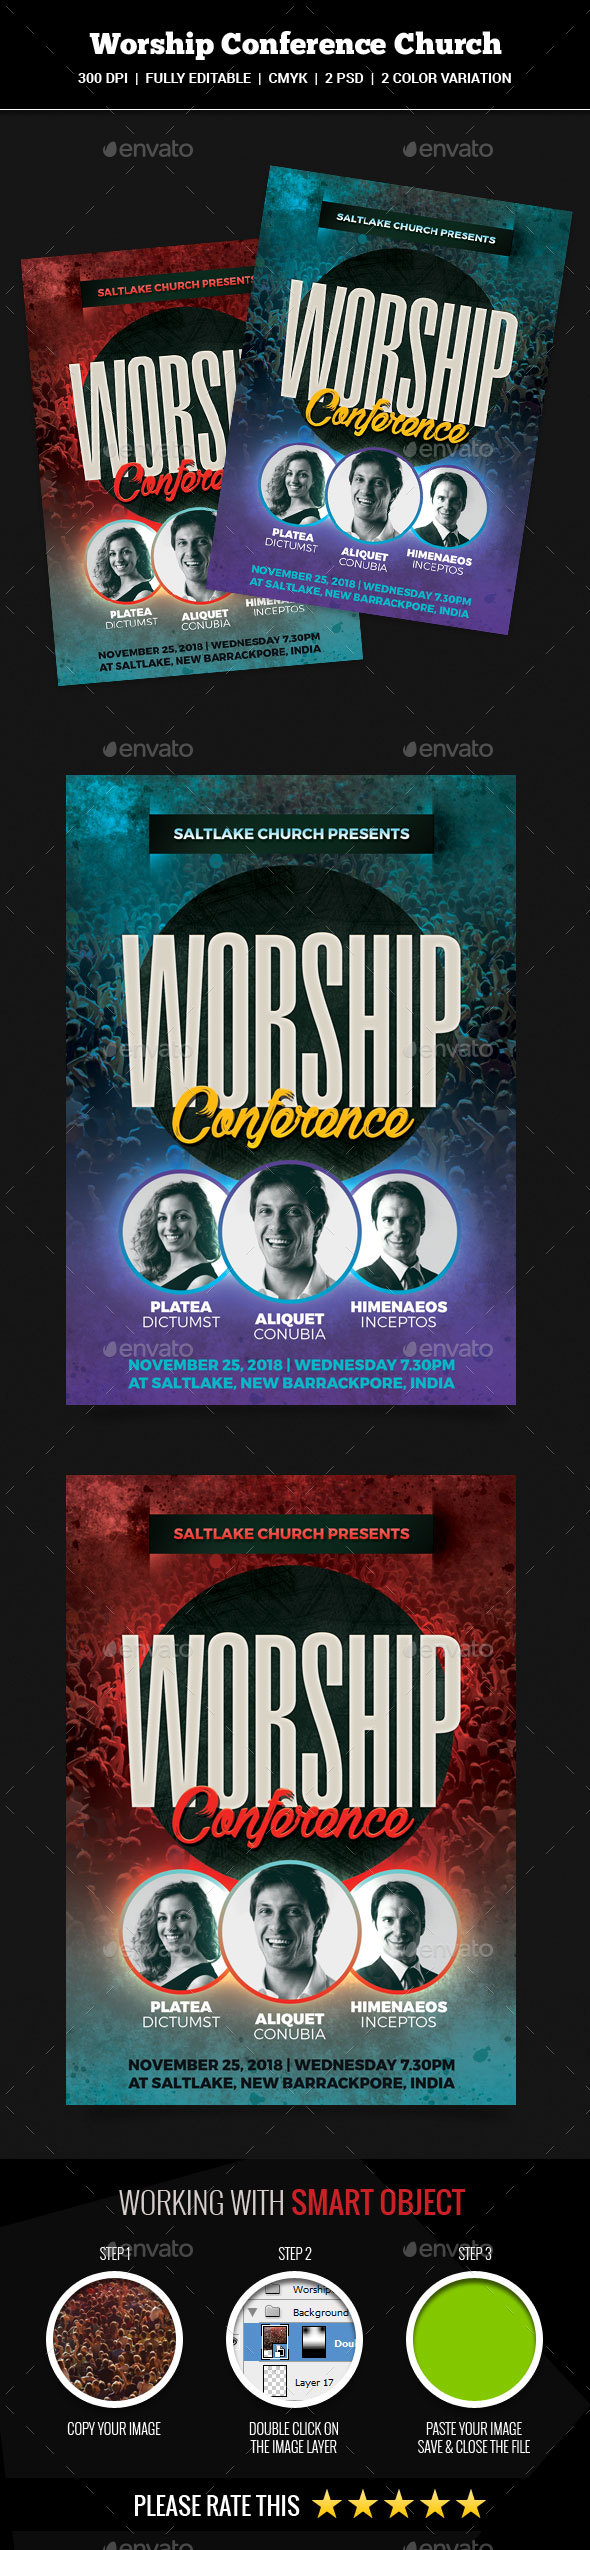 Worship Conference Church Flyer - Church Flyers